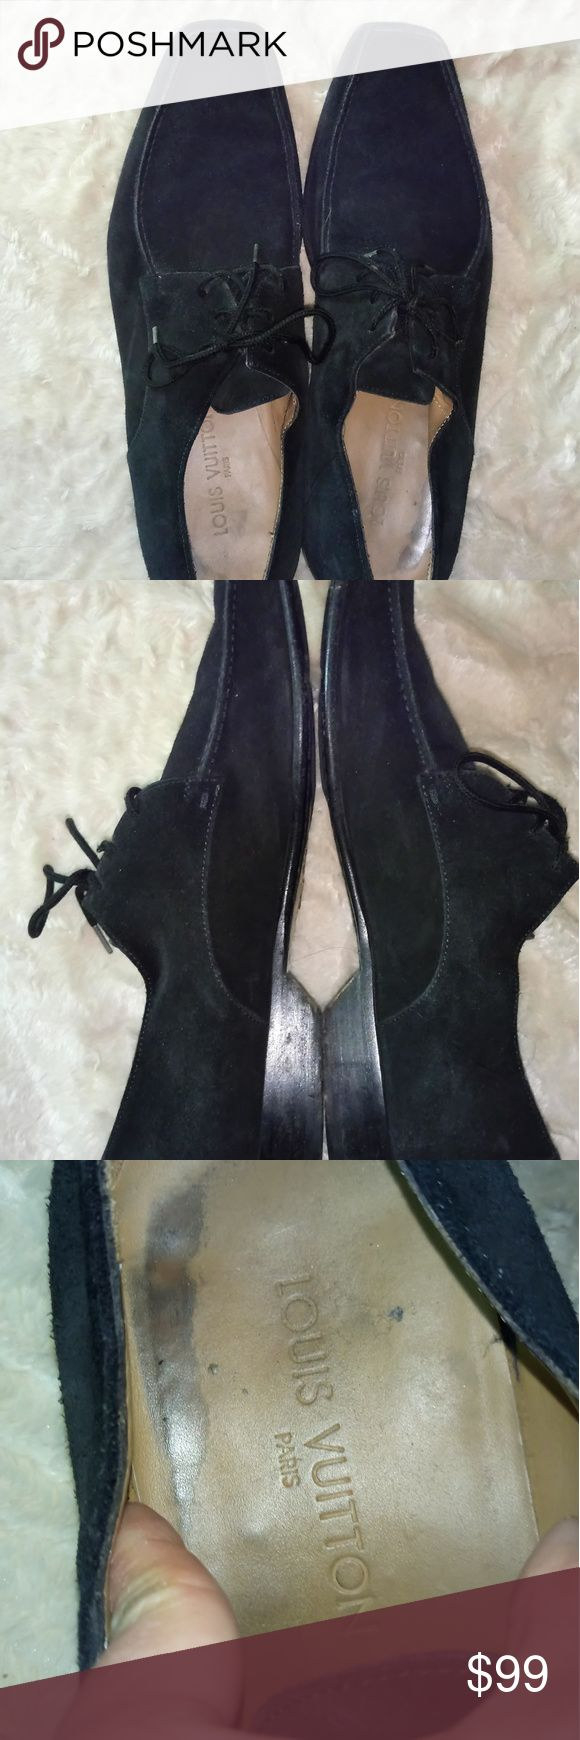 Louis Vuitton Men Shoes 100% authentic. The condition is good just normal sign of used. The tide string is tear but still OK to tide. The outside look great. Very stylish. I already lowered the price a lot so price firm. Louis Vuitton Shoes Sneakers